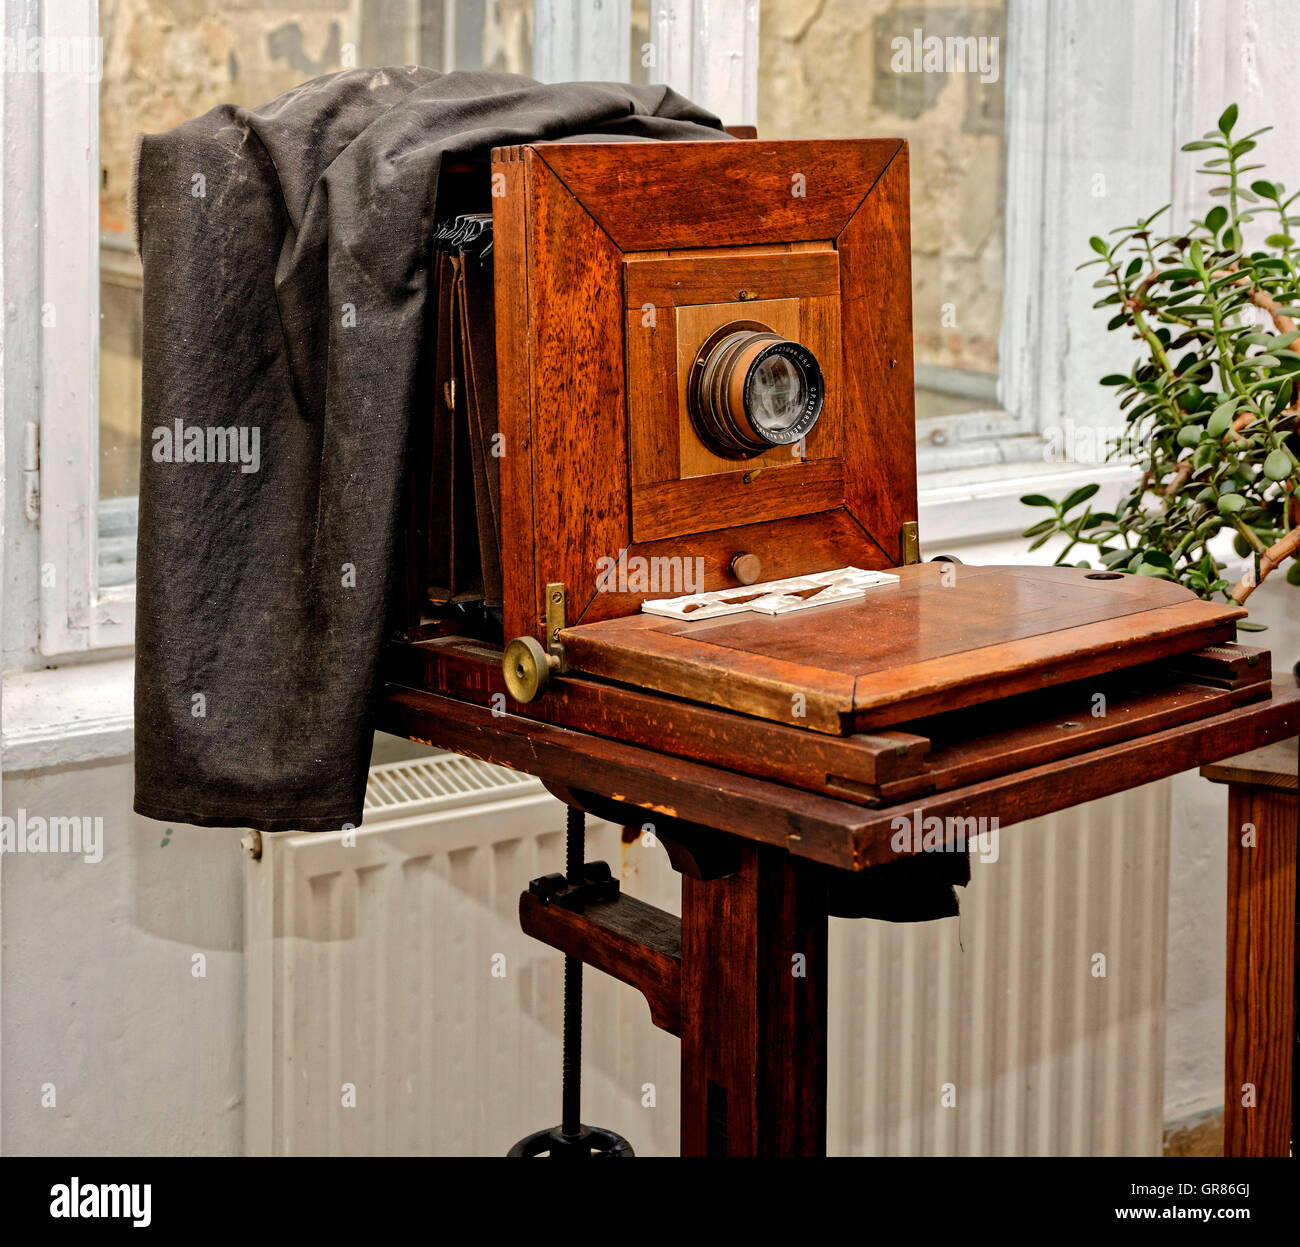 Past Large Format Camera, Professional Camera Made Of Wood - Stock Image